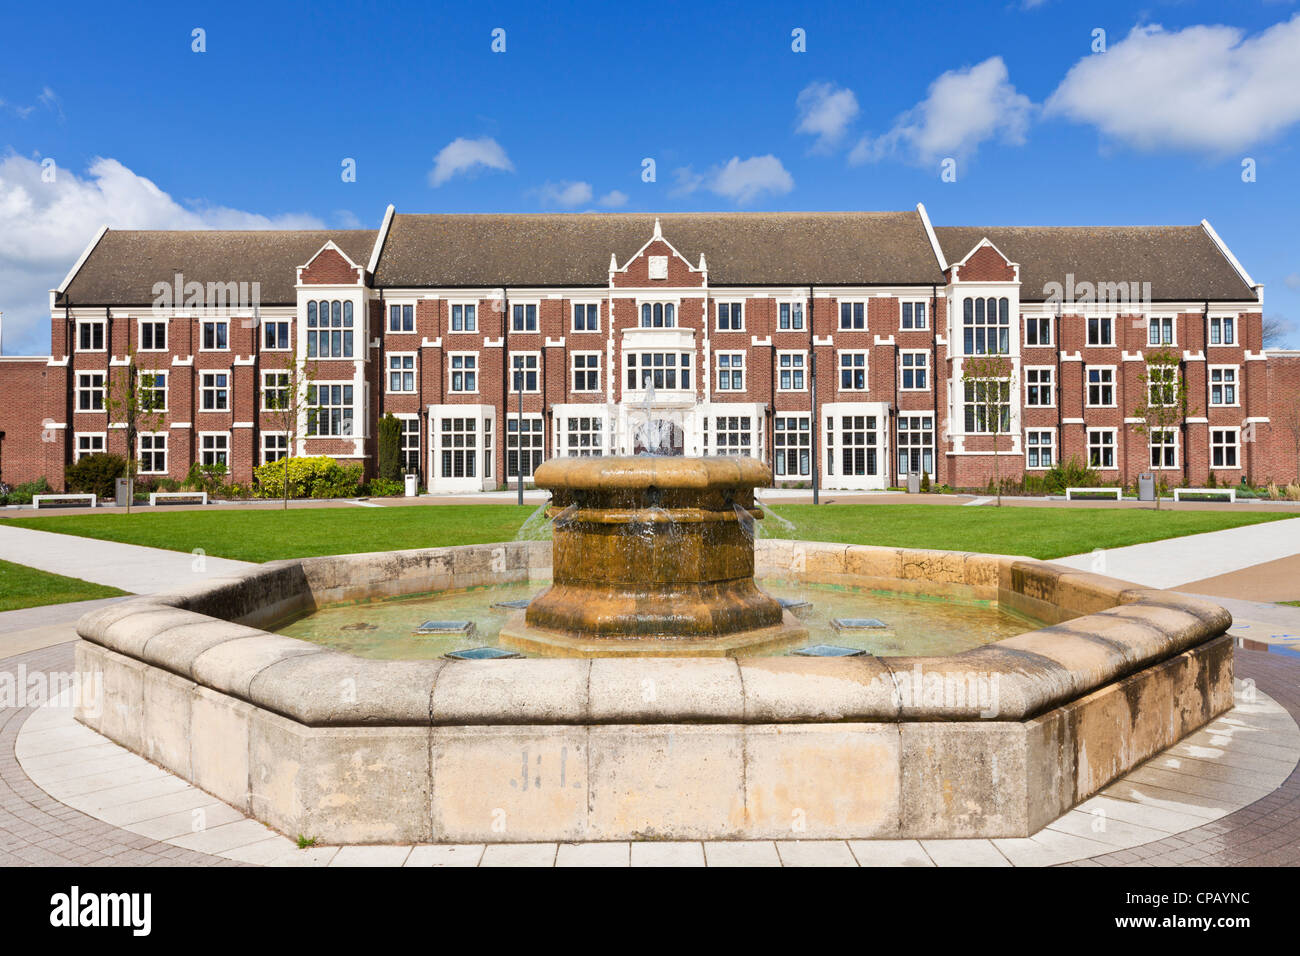 Rutland building for central student administration Loughborough University campus Leicestershire England UK GB - Stock Image